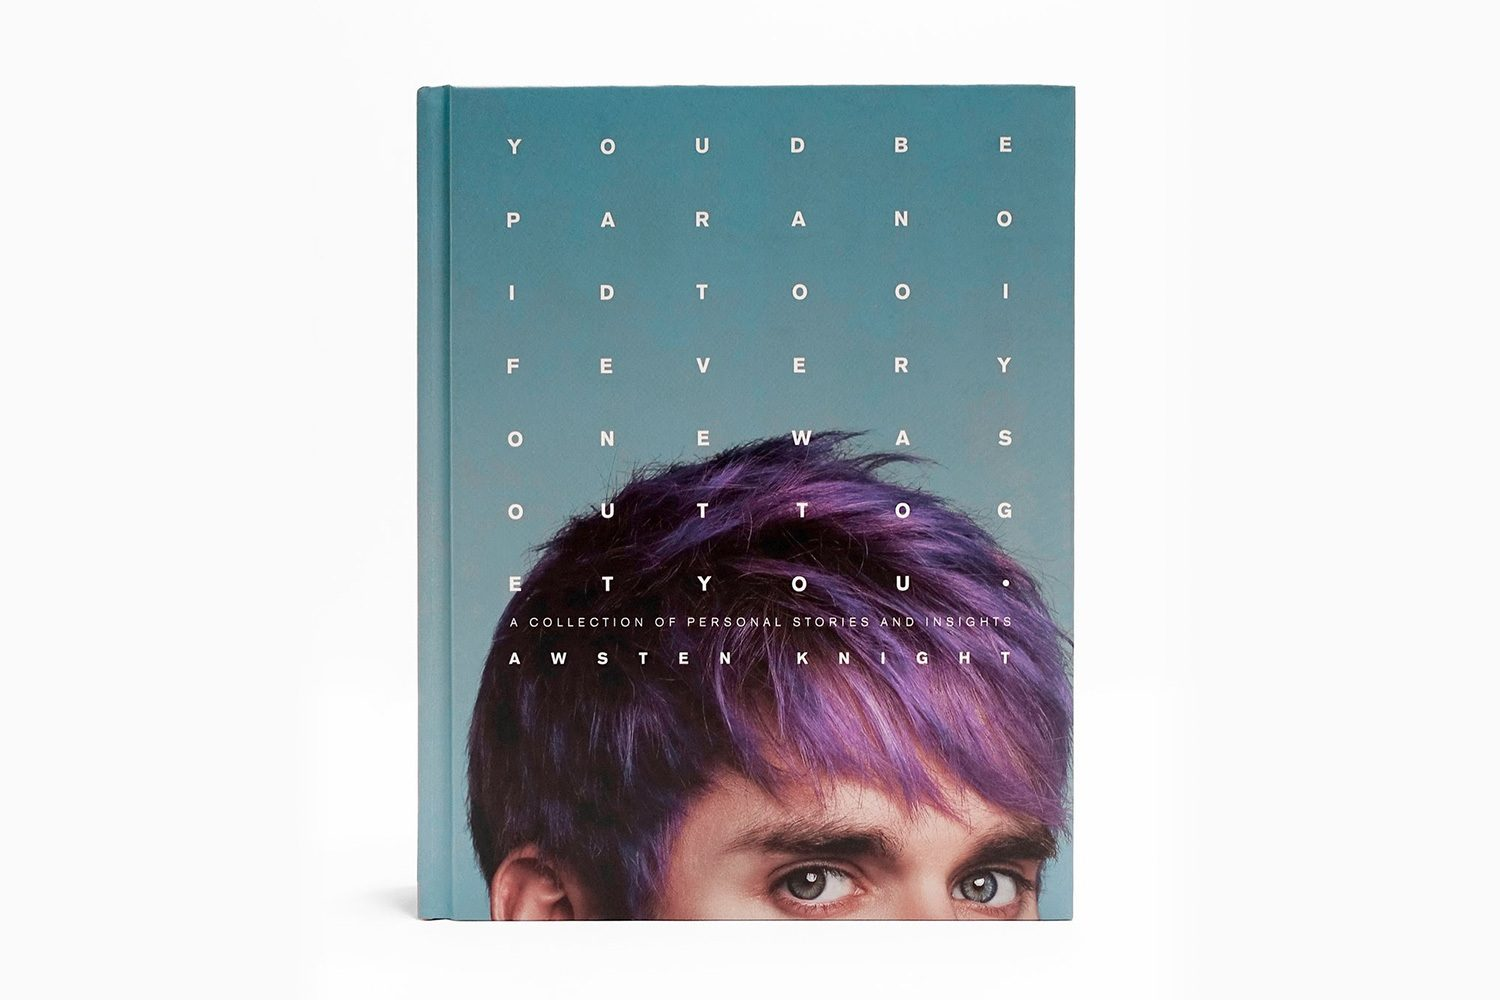 Waterparks' Awsten Knight has announced his debut book